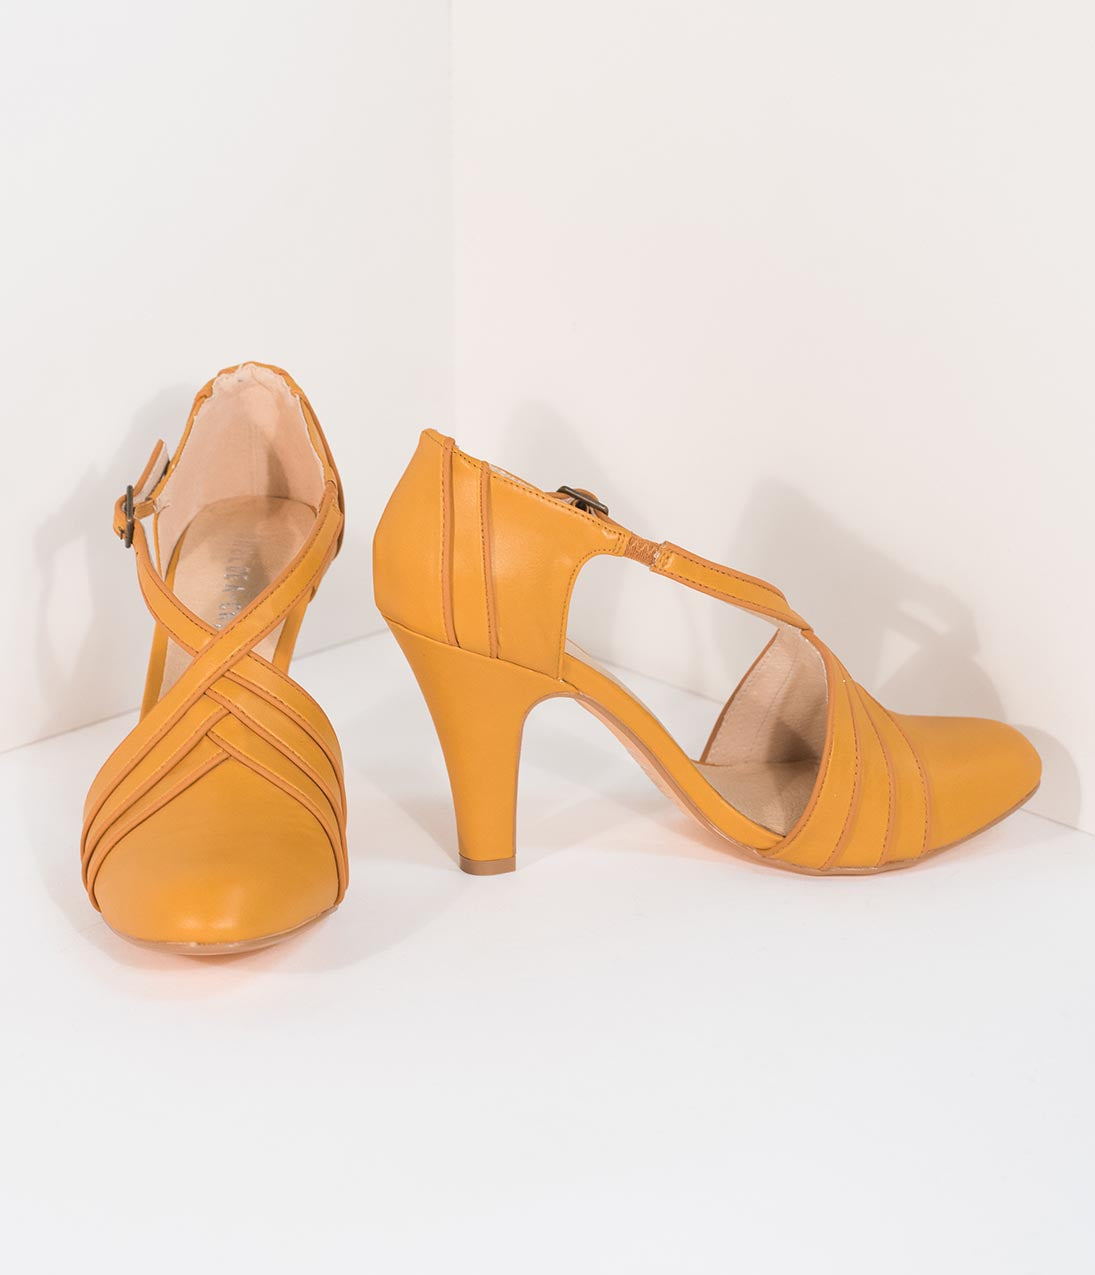 Authentic Natural 1950s Makeup History and Tutorial Chelsea Crew Vintage Style Mustard Yellow Leatherette DOrsay Lana Heels $64.00 AT vintagedancer.com